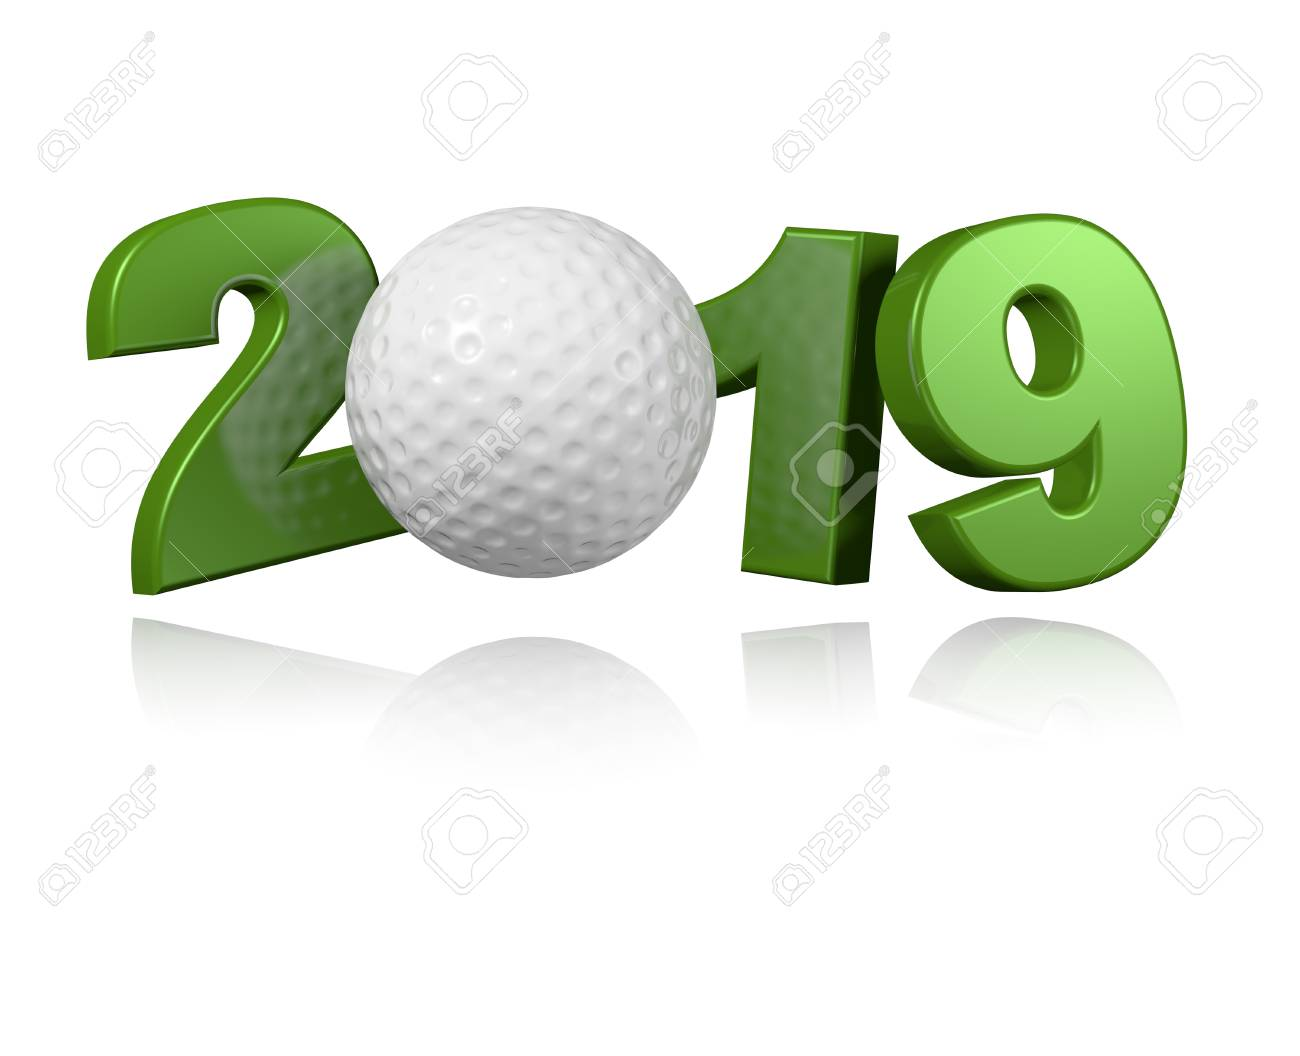 Golf ball 2019 Design with a White Background - 102796149